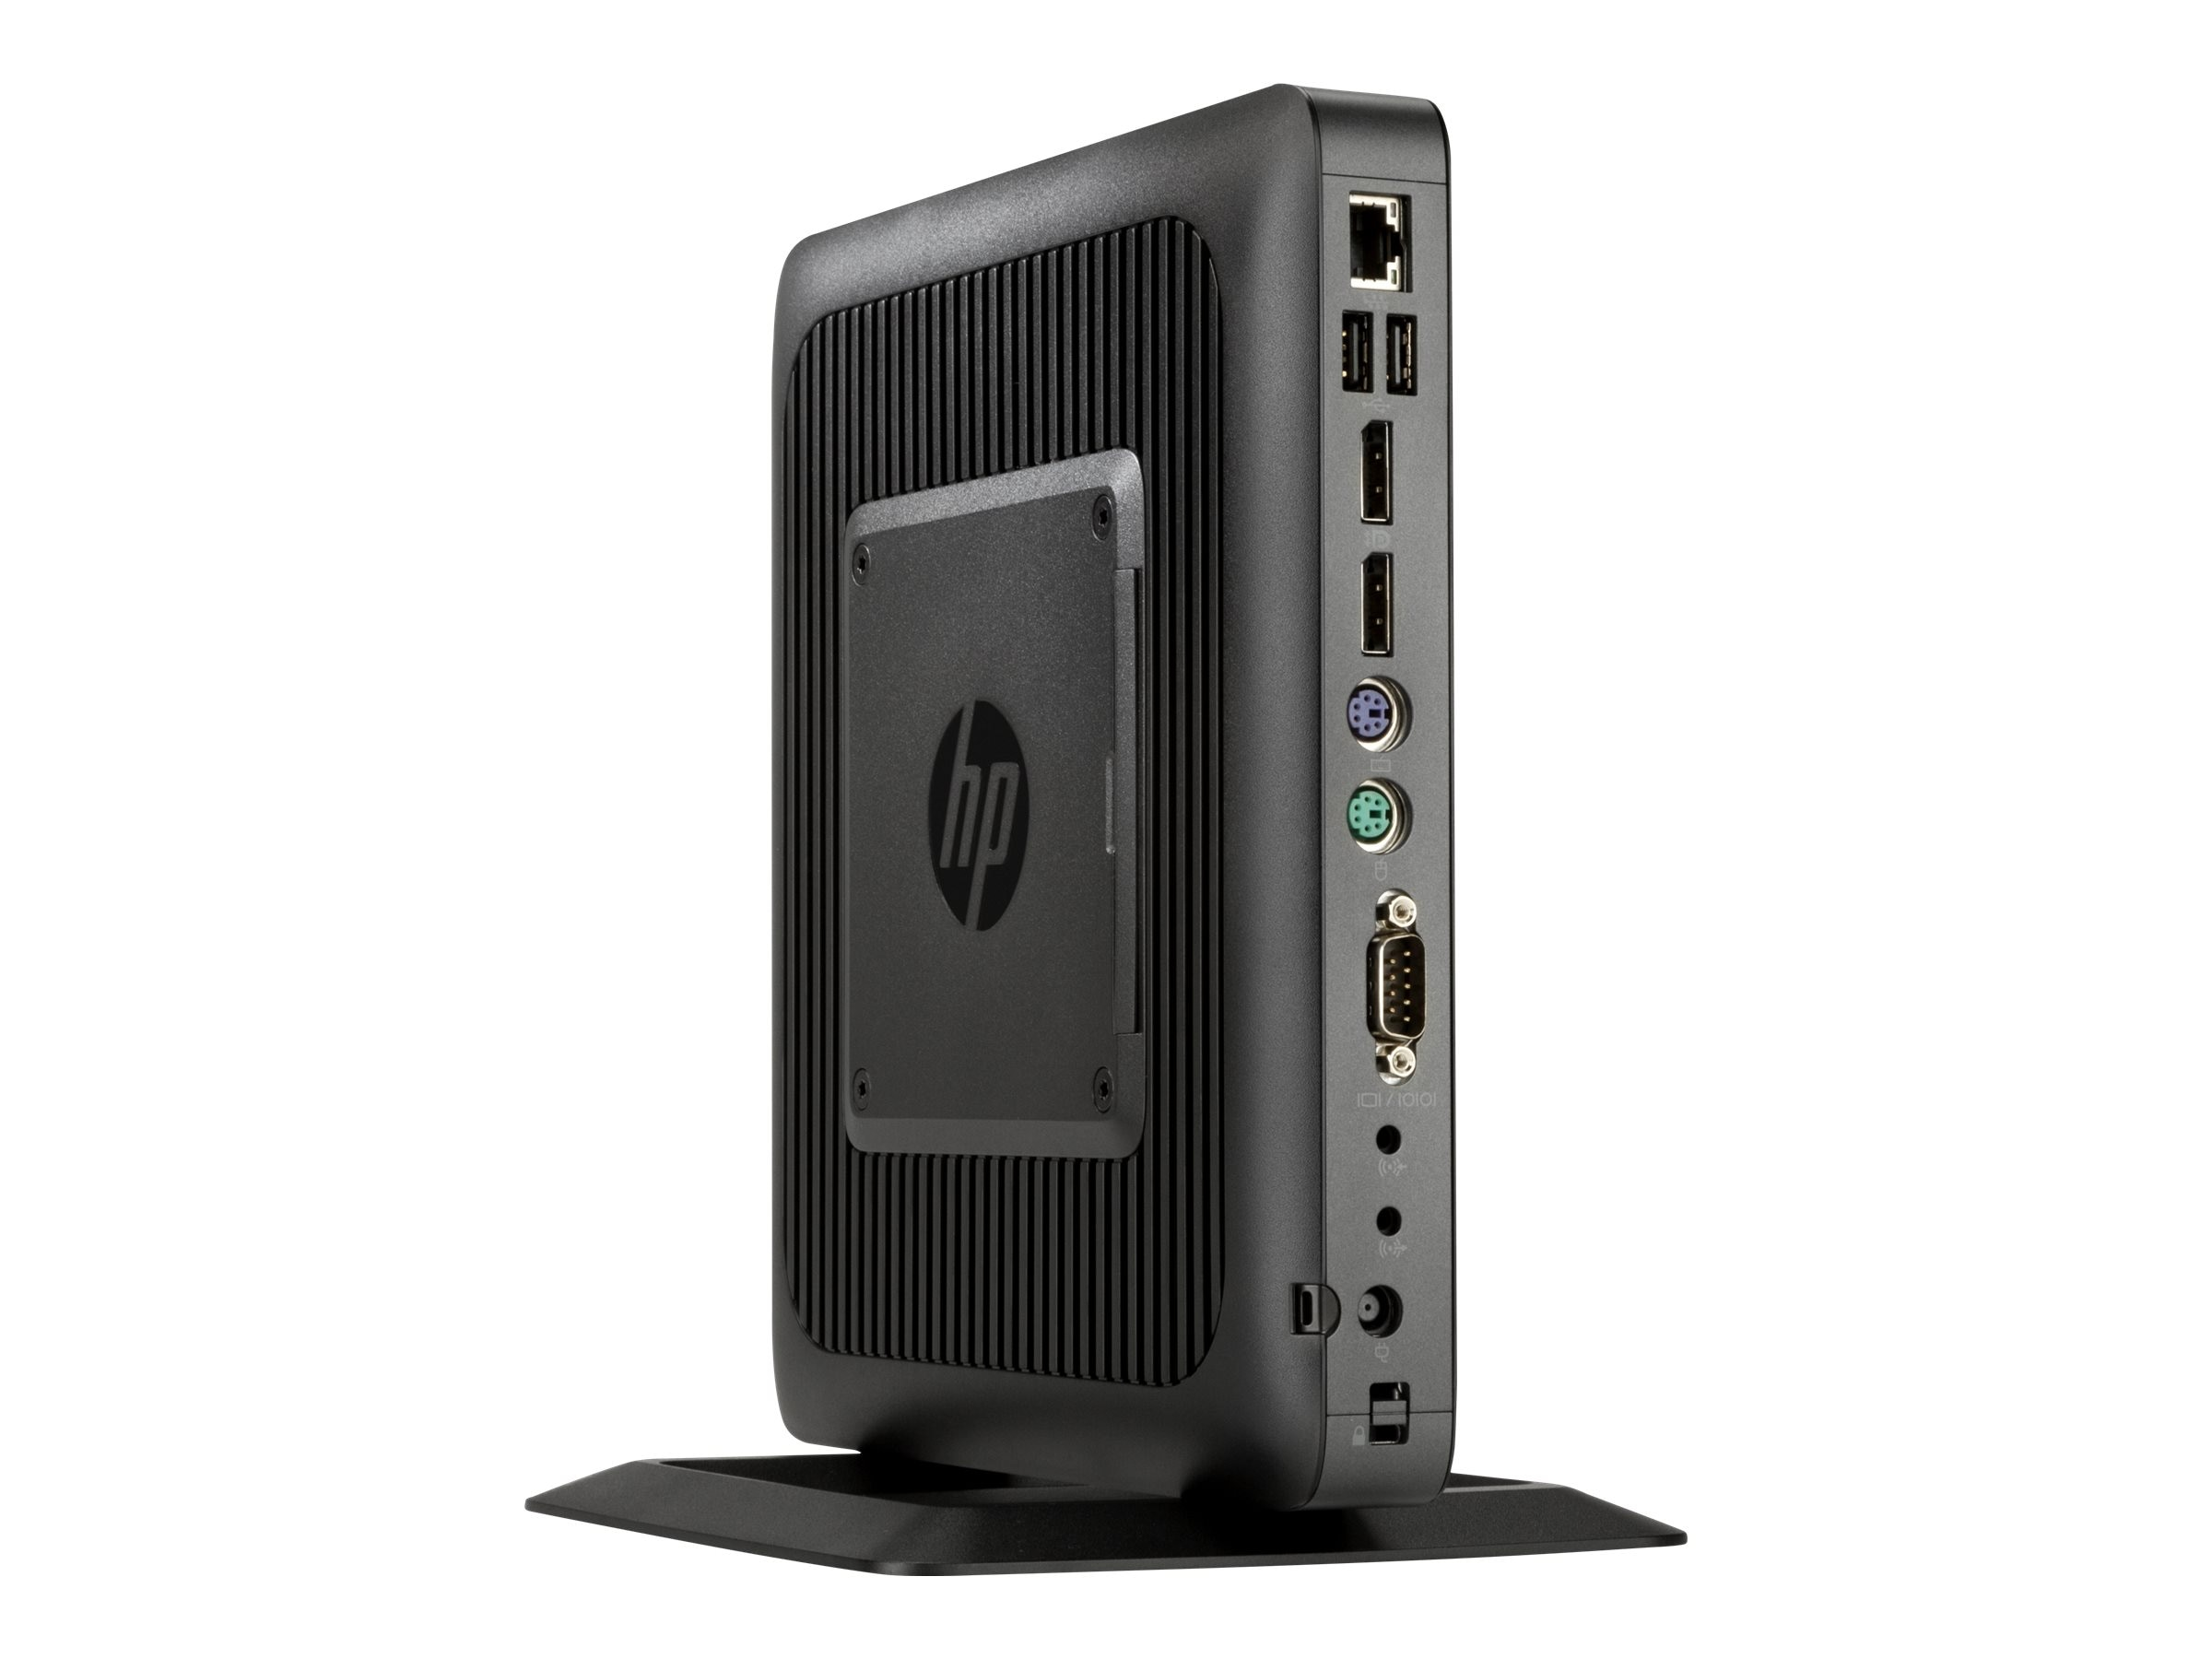 HP t620 Flexible Thin Client AMD QC GX-415GA 1.5GHz 4GB RAM 8GB Flash GbE ThinPro, G4U31UT#ABA